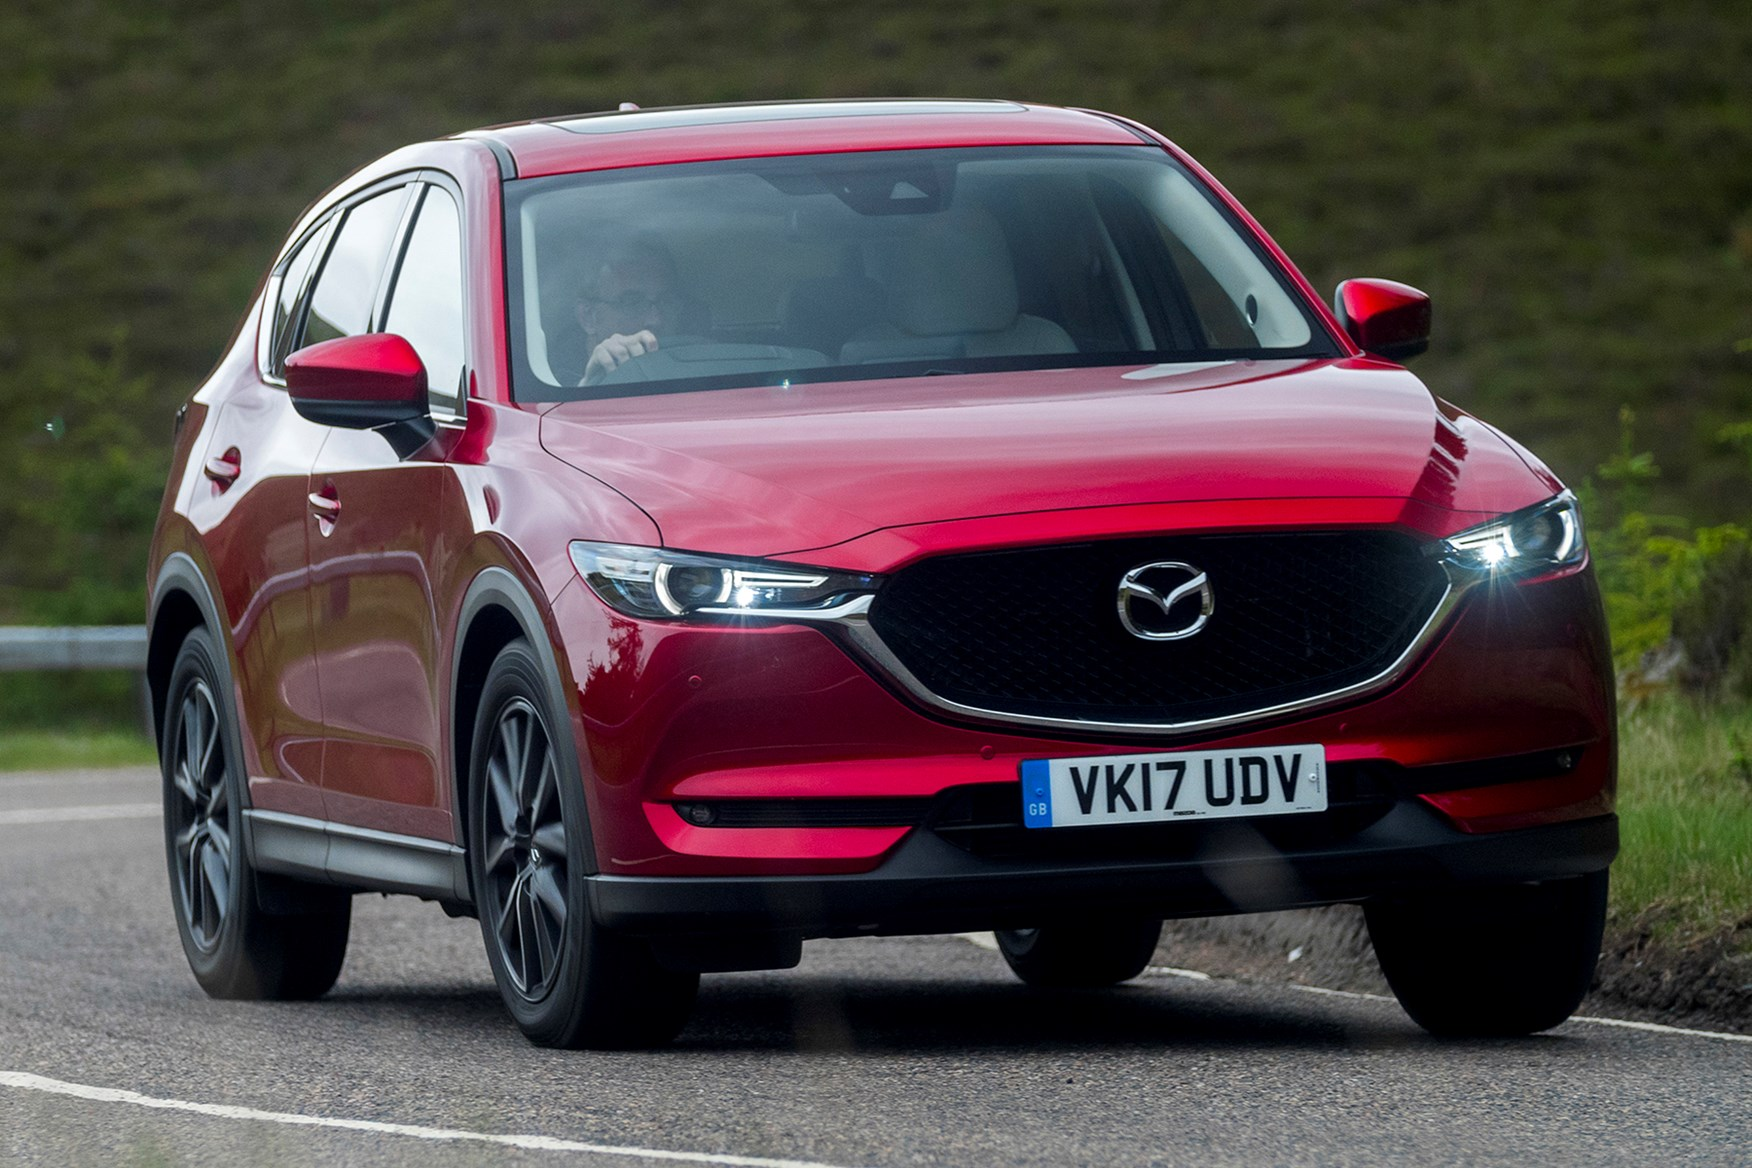 Buy your car before tax changes in April 2020